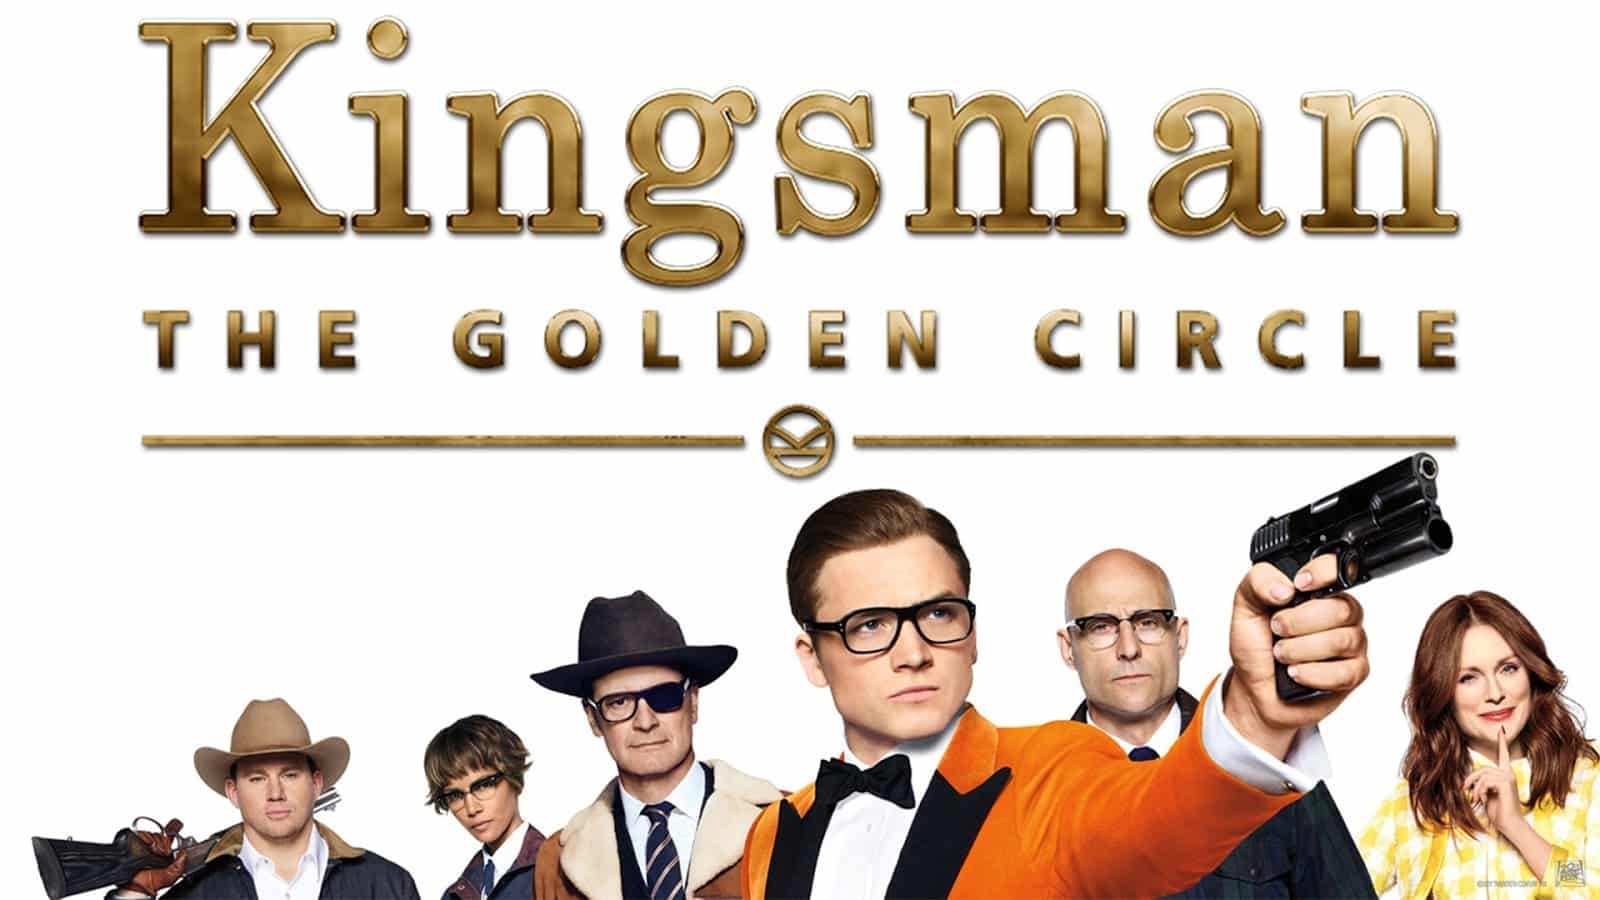 Kingsman: The Golden Circle DVD Review - Inferior To The